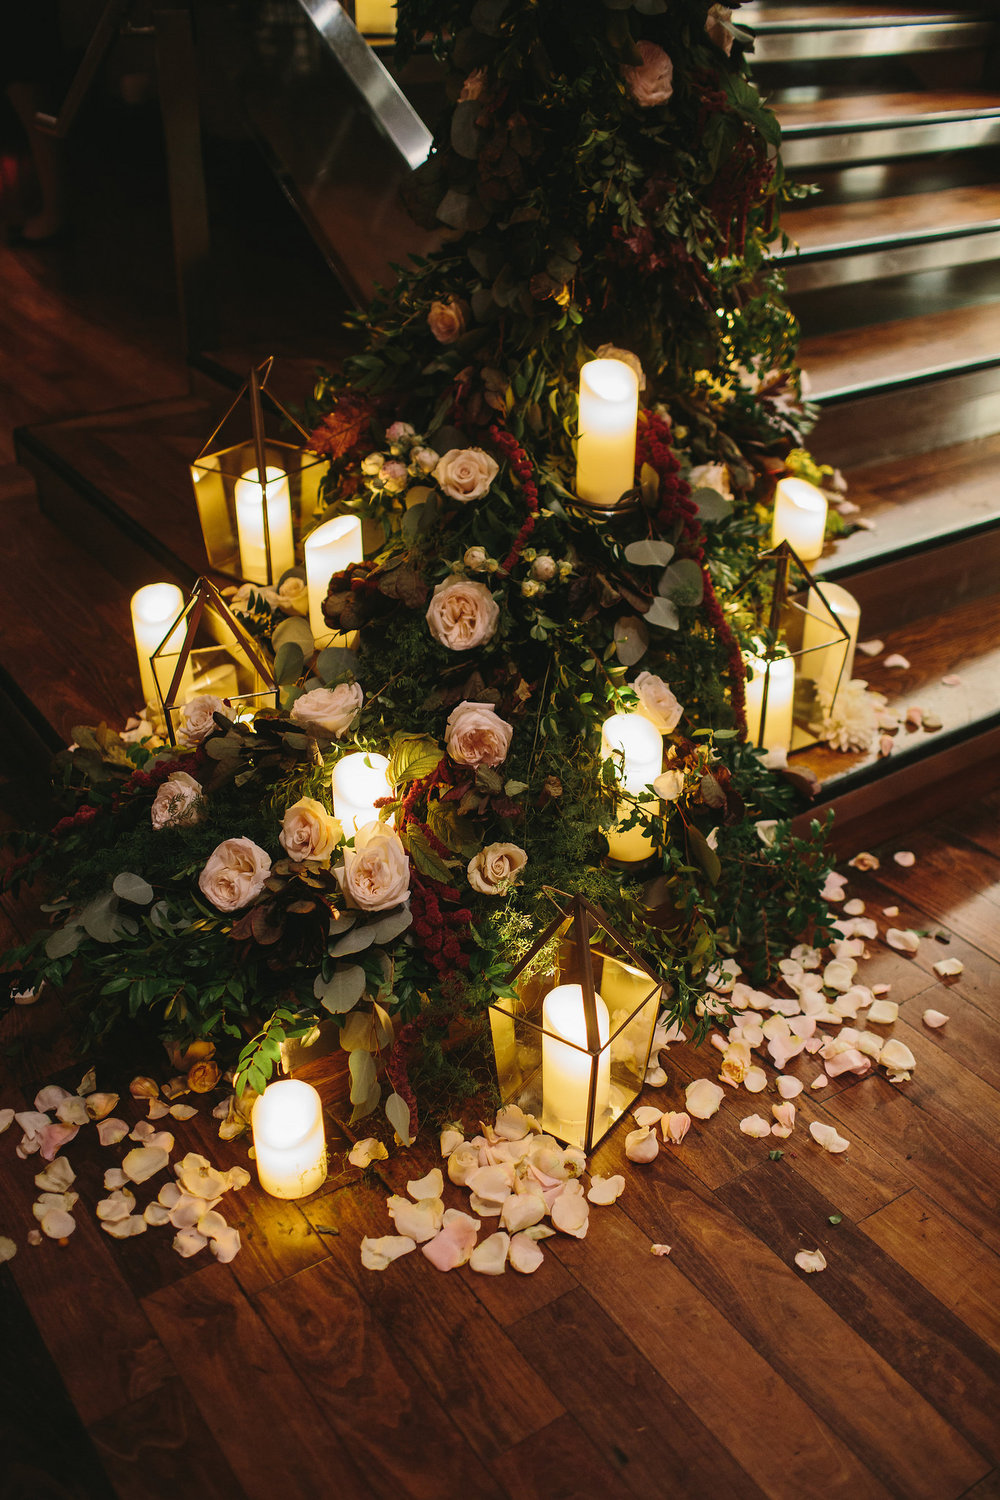 Stair Decor by Poppy Floral. Photo by Lindsay Hite Photography.